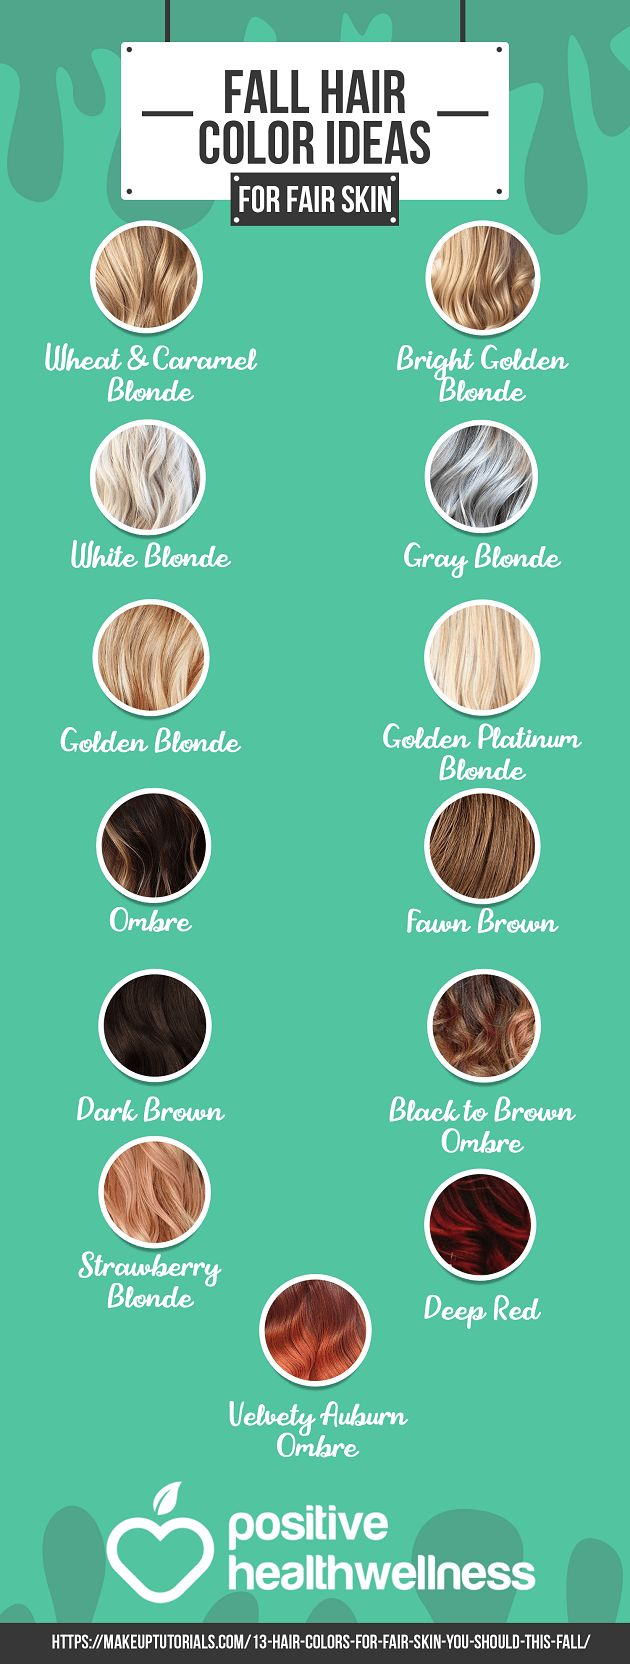 13 Fall Hair Color Ideas For Fair Skin – Positive Health Wellness Infographic